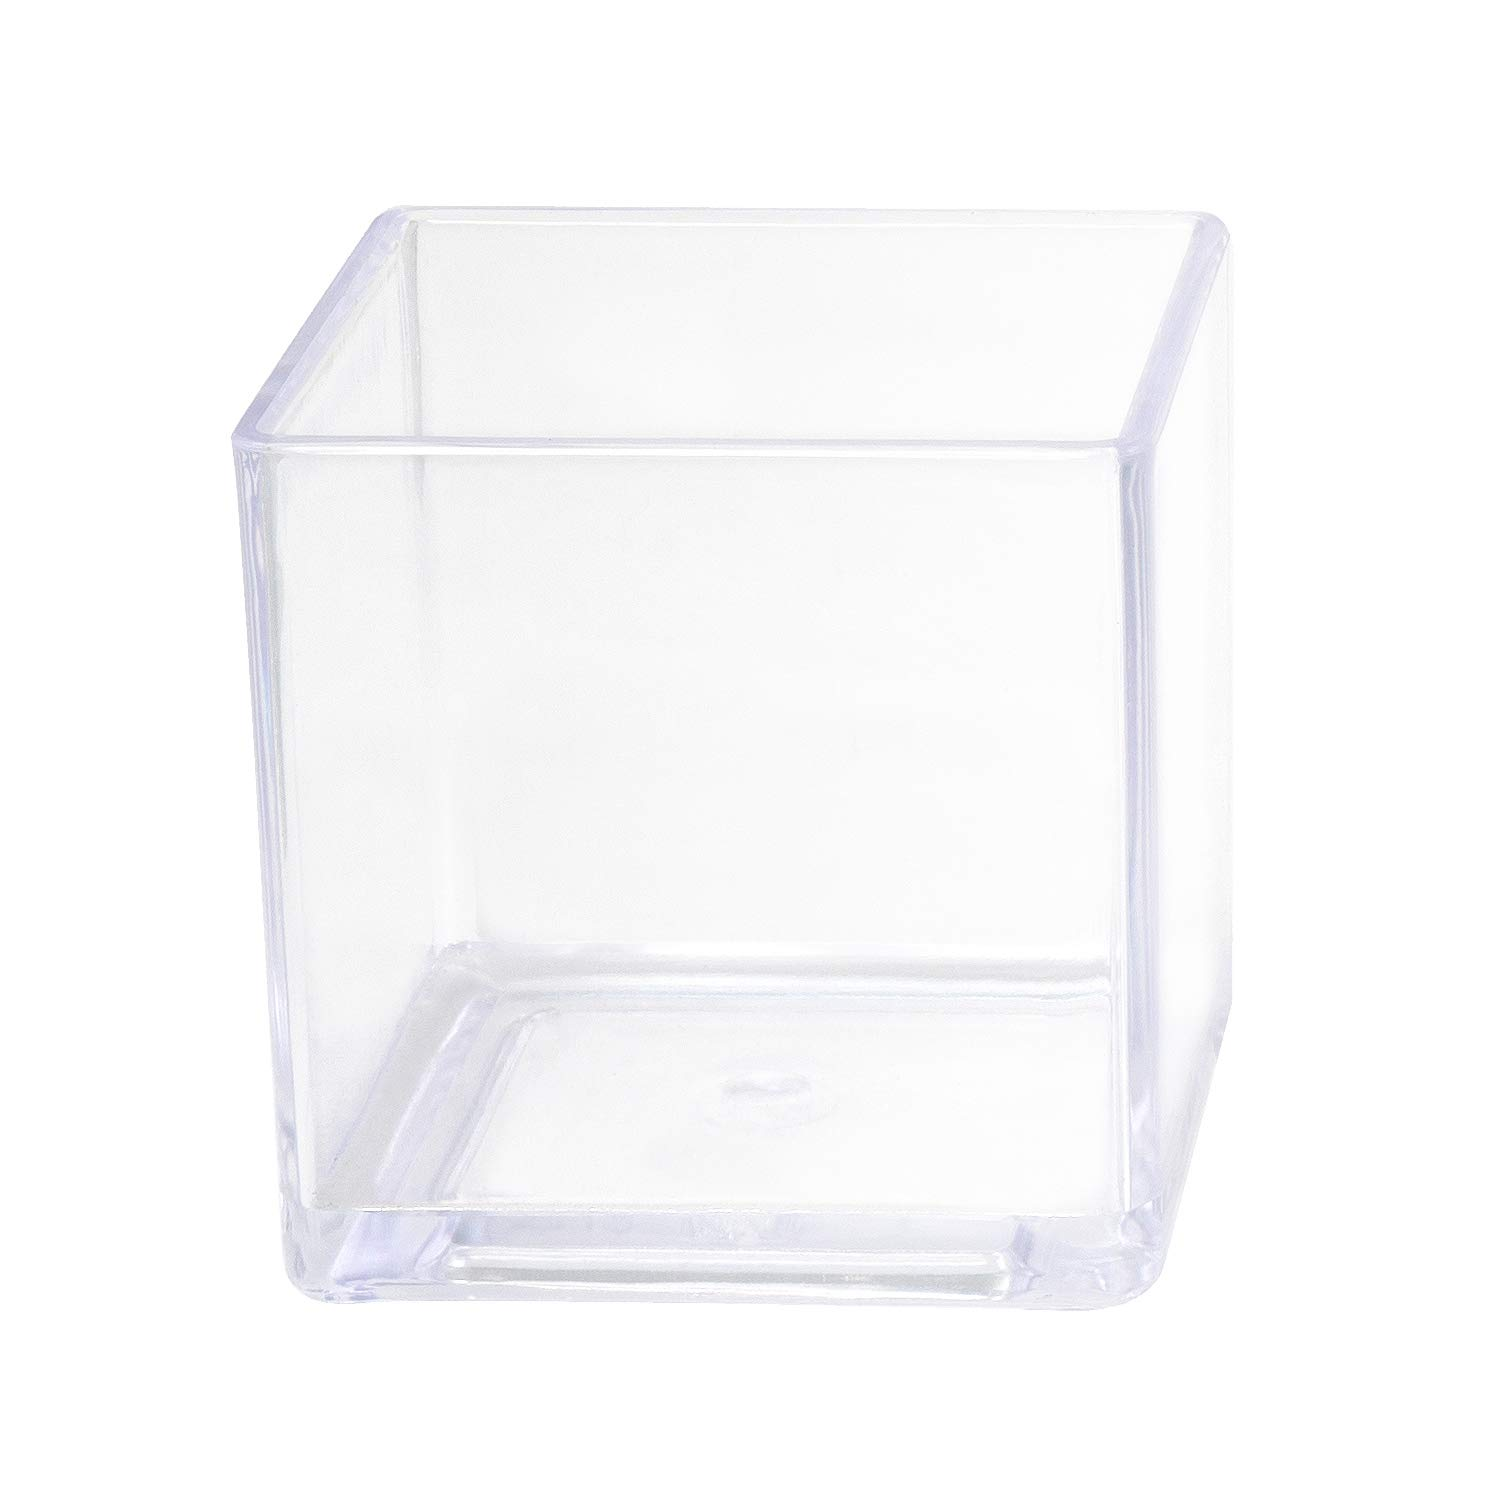 Royal Imports Flower Acrylic Vase Decorative Centerpiece for Home or Wedding Break Resistant - Cube Shape, 5''x5'', 5'' Tall by Royal Imports